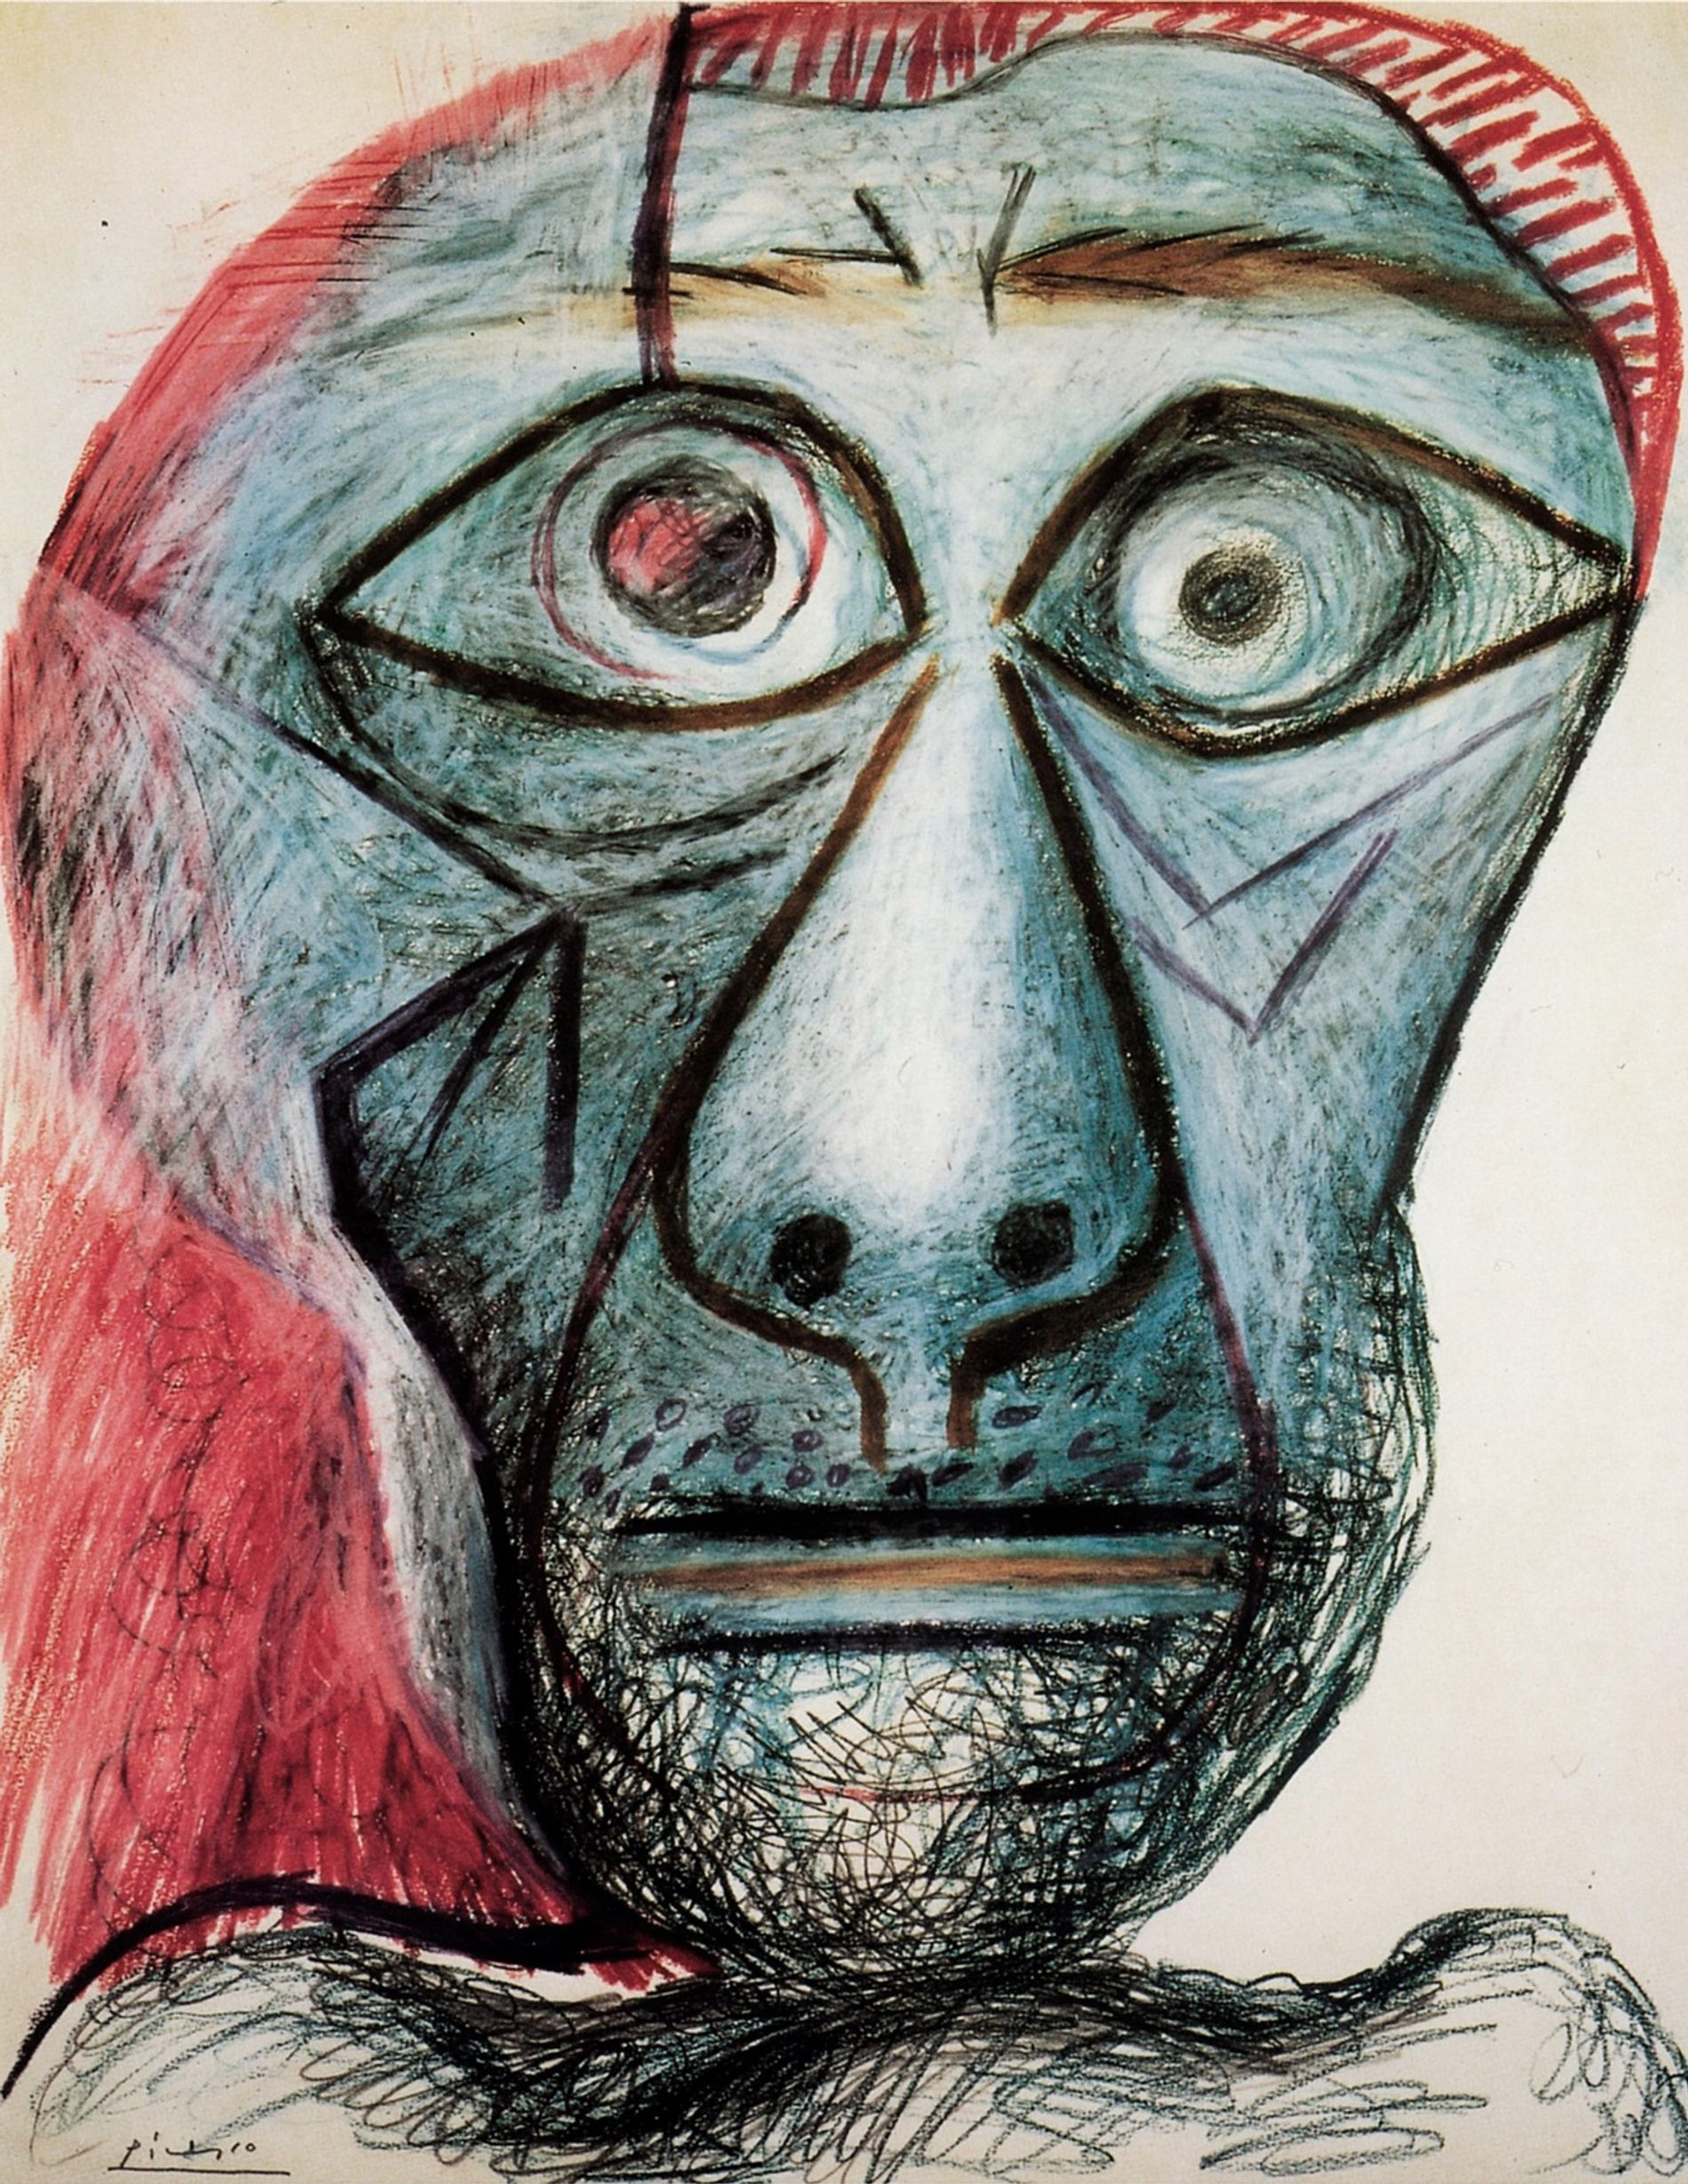 "Picasso never stopped reinventing his artistic style, and nothing was out of reach. He created thousands of paintings, sculptures, ceramics, watercolors, and engravings. ""He said he had no secrets in his work,"" says the artist's granddaughter Diana Widmaier Picasso. ""It was like a diary."" Picasso drew this self-portrait when he was 90 years old."